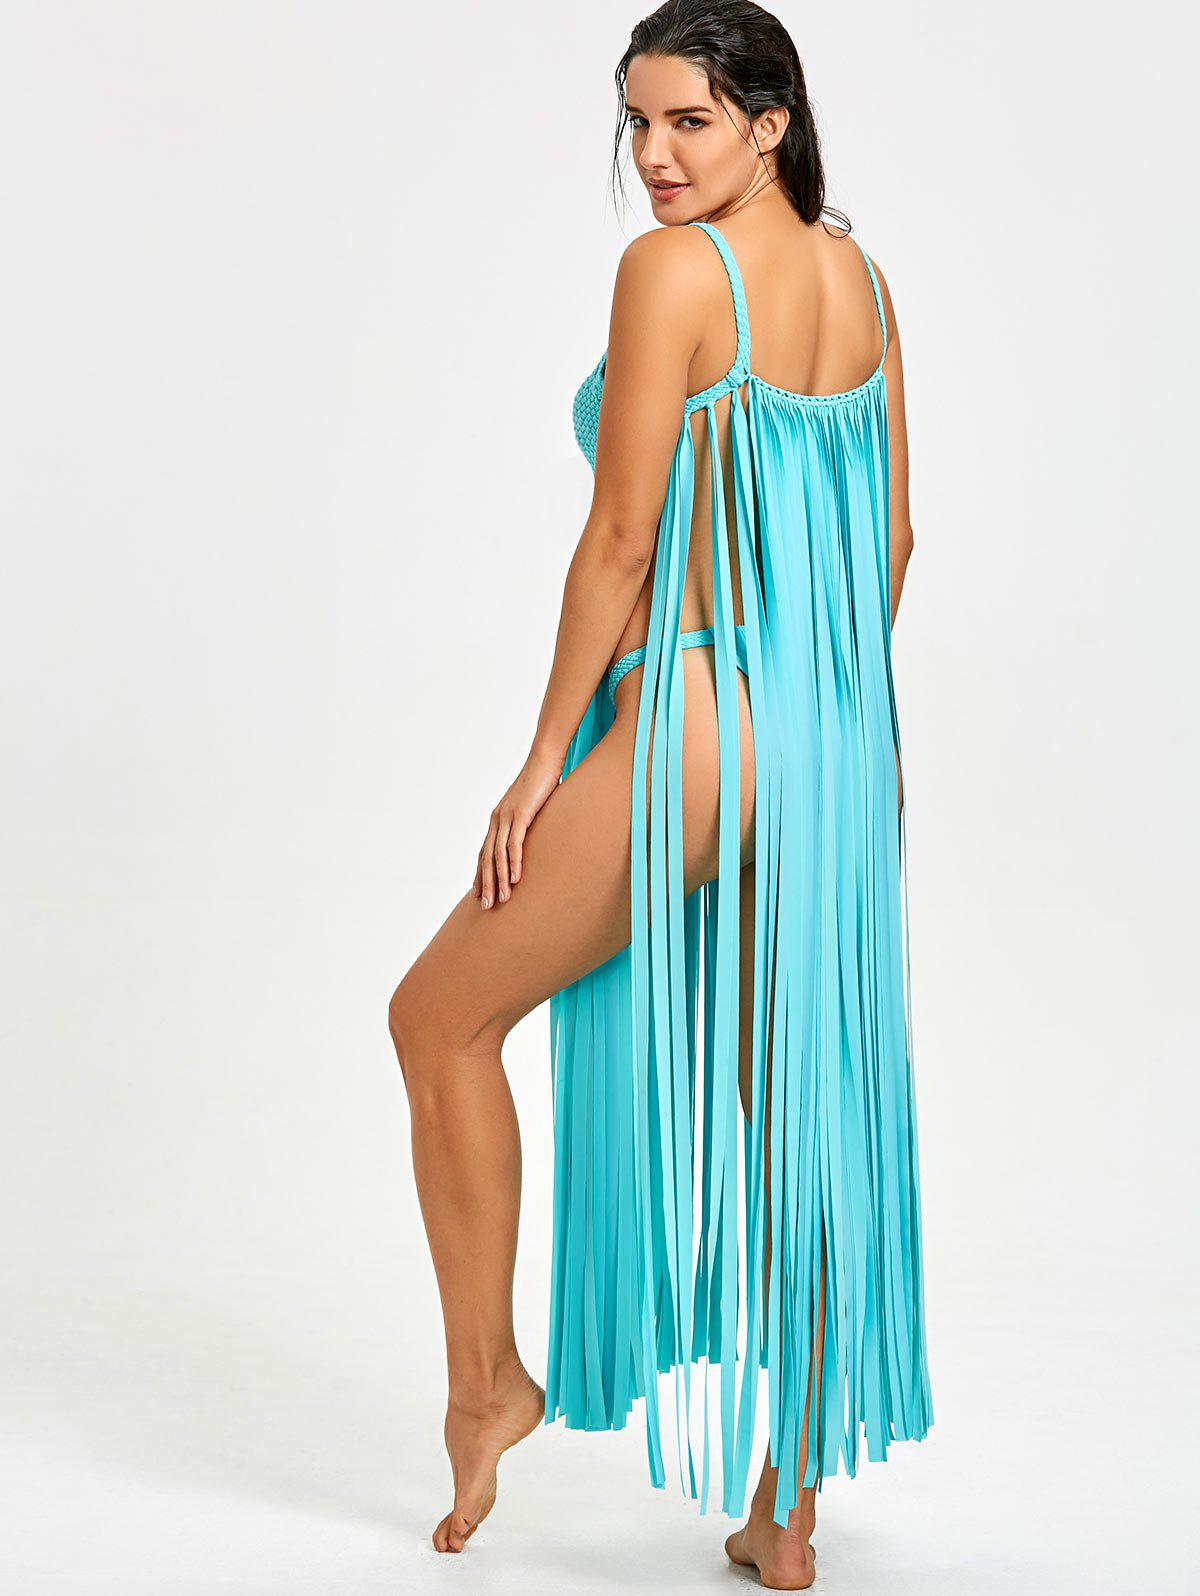 Fringe Crochet Knit Cover-up with G-string - LAKE BLUE ONE SIZE